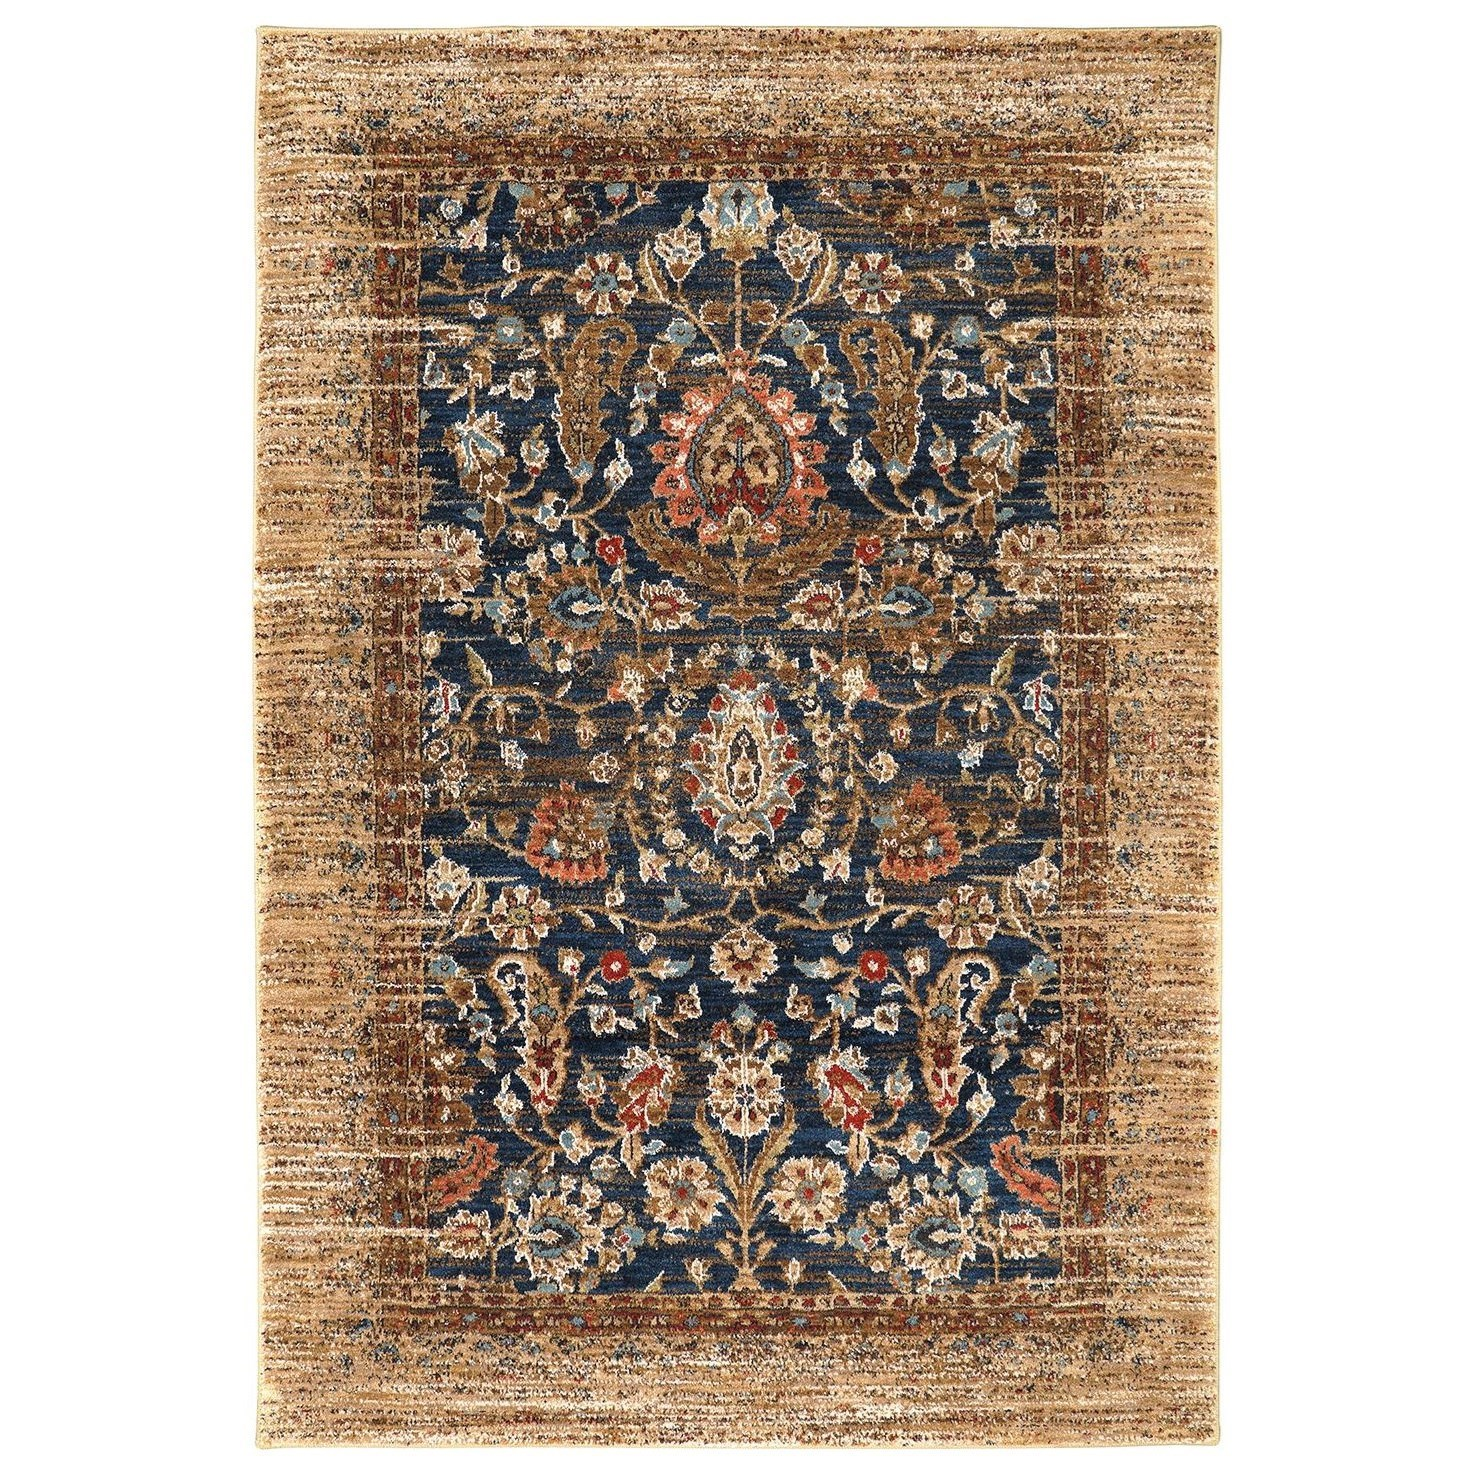 Spice Market 3'5x5'5 Charax Gold Rug by Karastan Rugs at Darvin Furniture